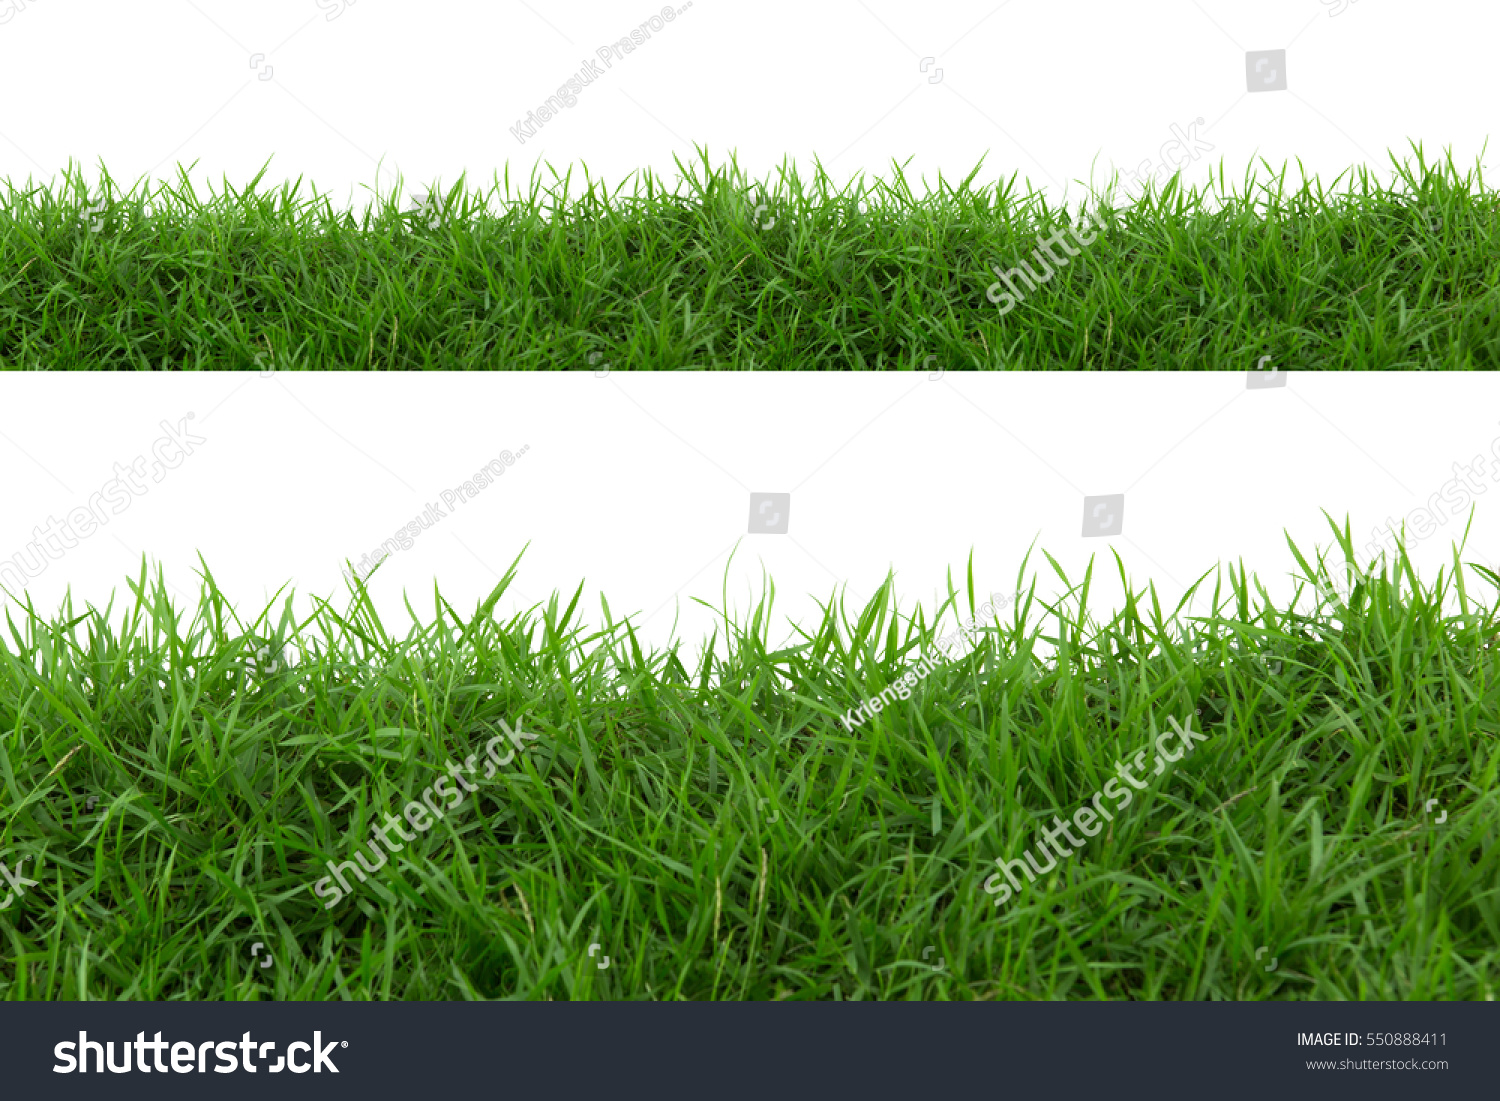 Grass isolated on white background. #550888411 - 123PhotoFree.com